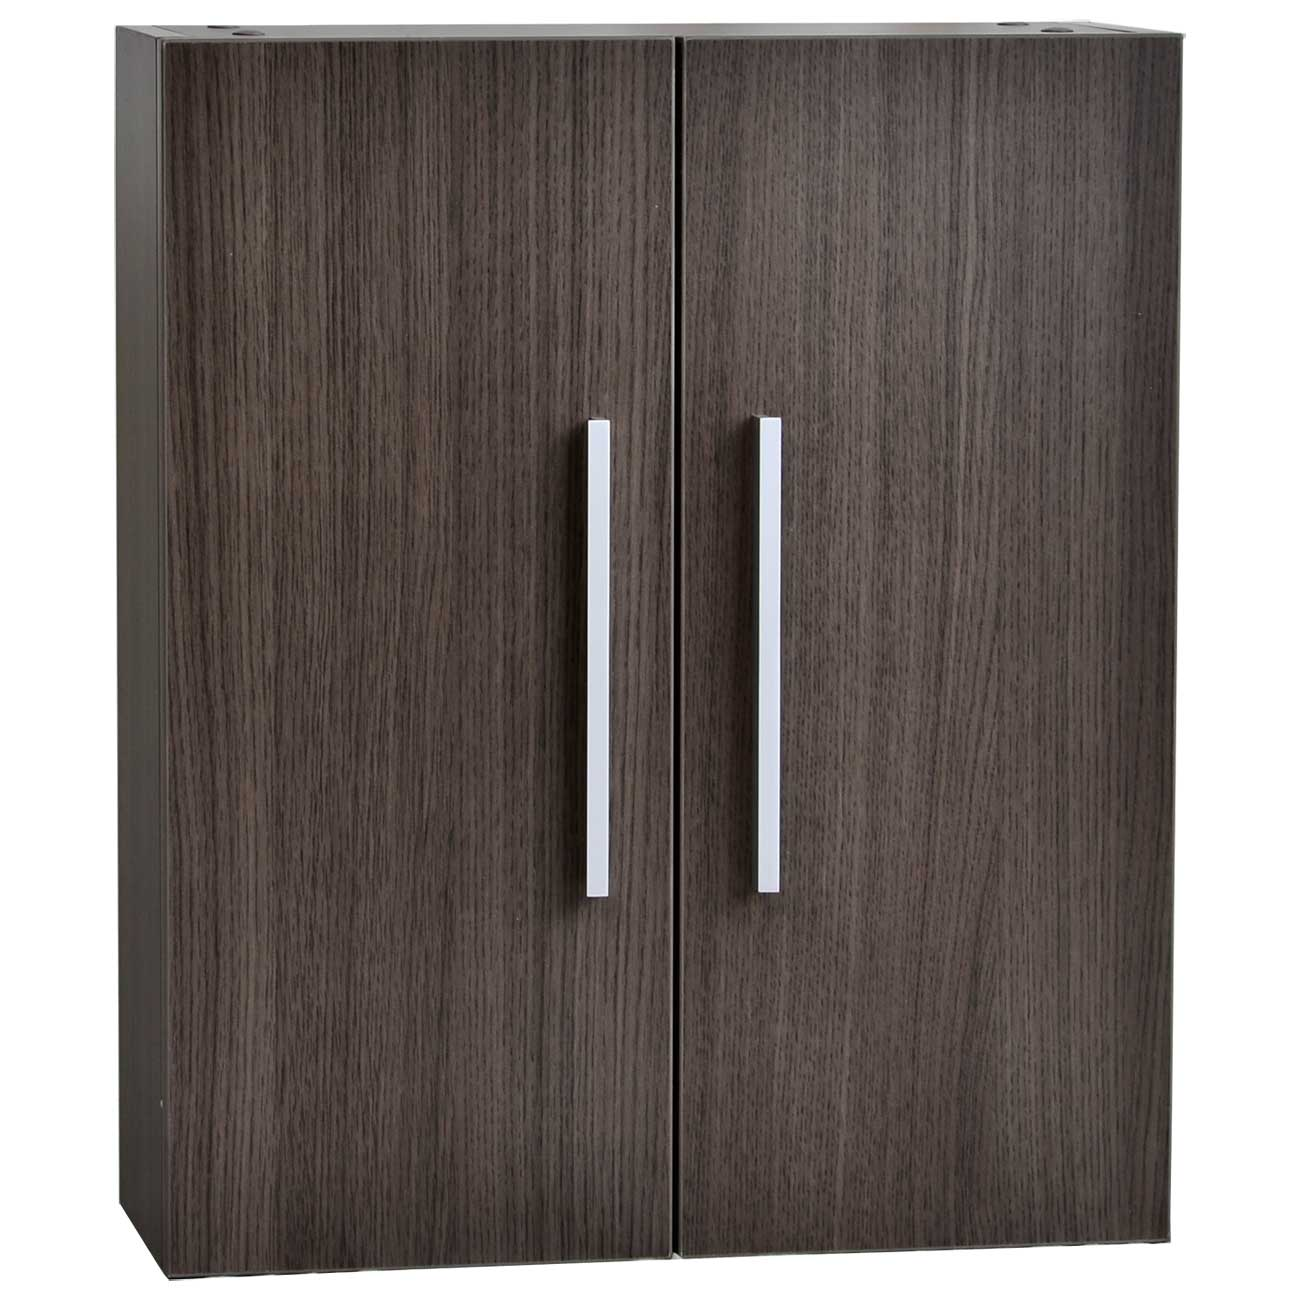 over the toilet wall cabinet grey oak 205 in w x 244 in h tn t520 sc go - Over The Toilet Cabinet